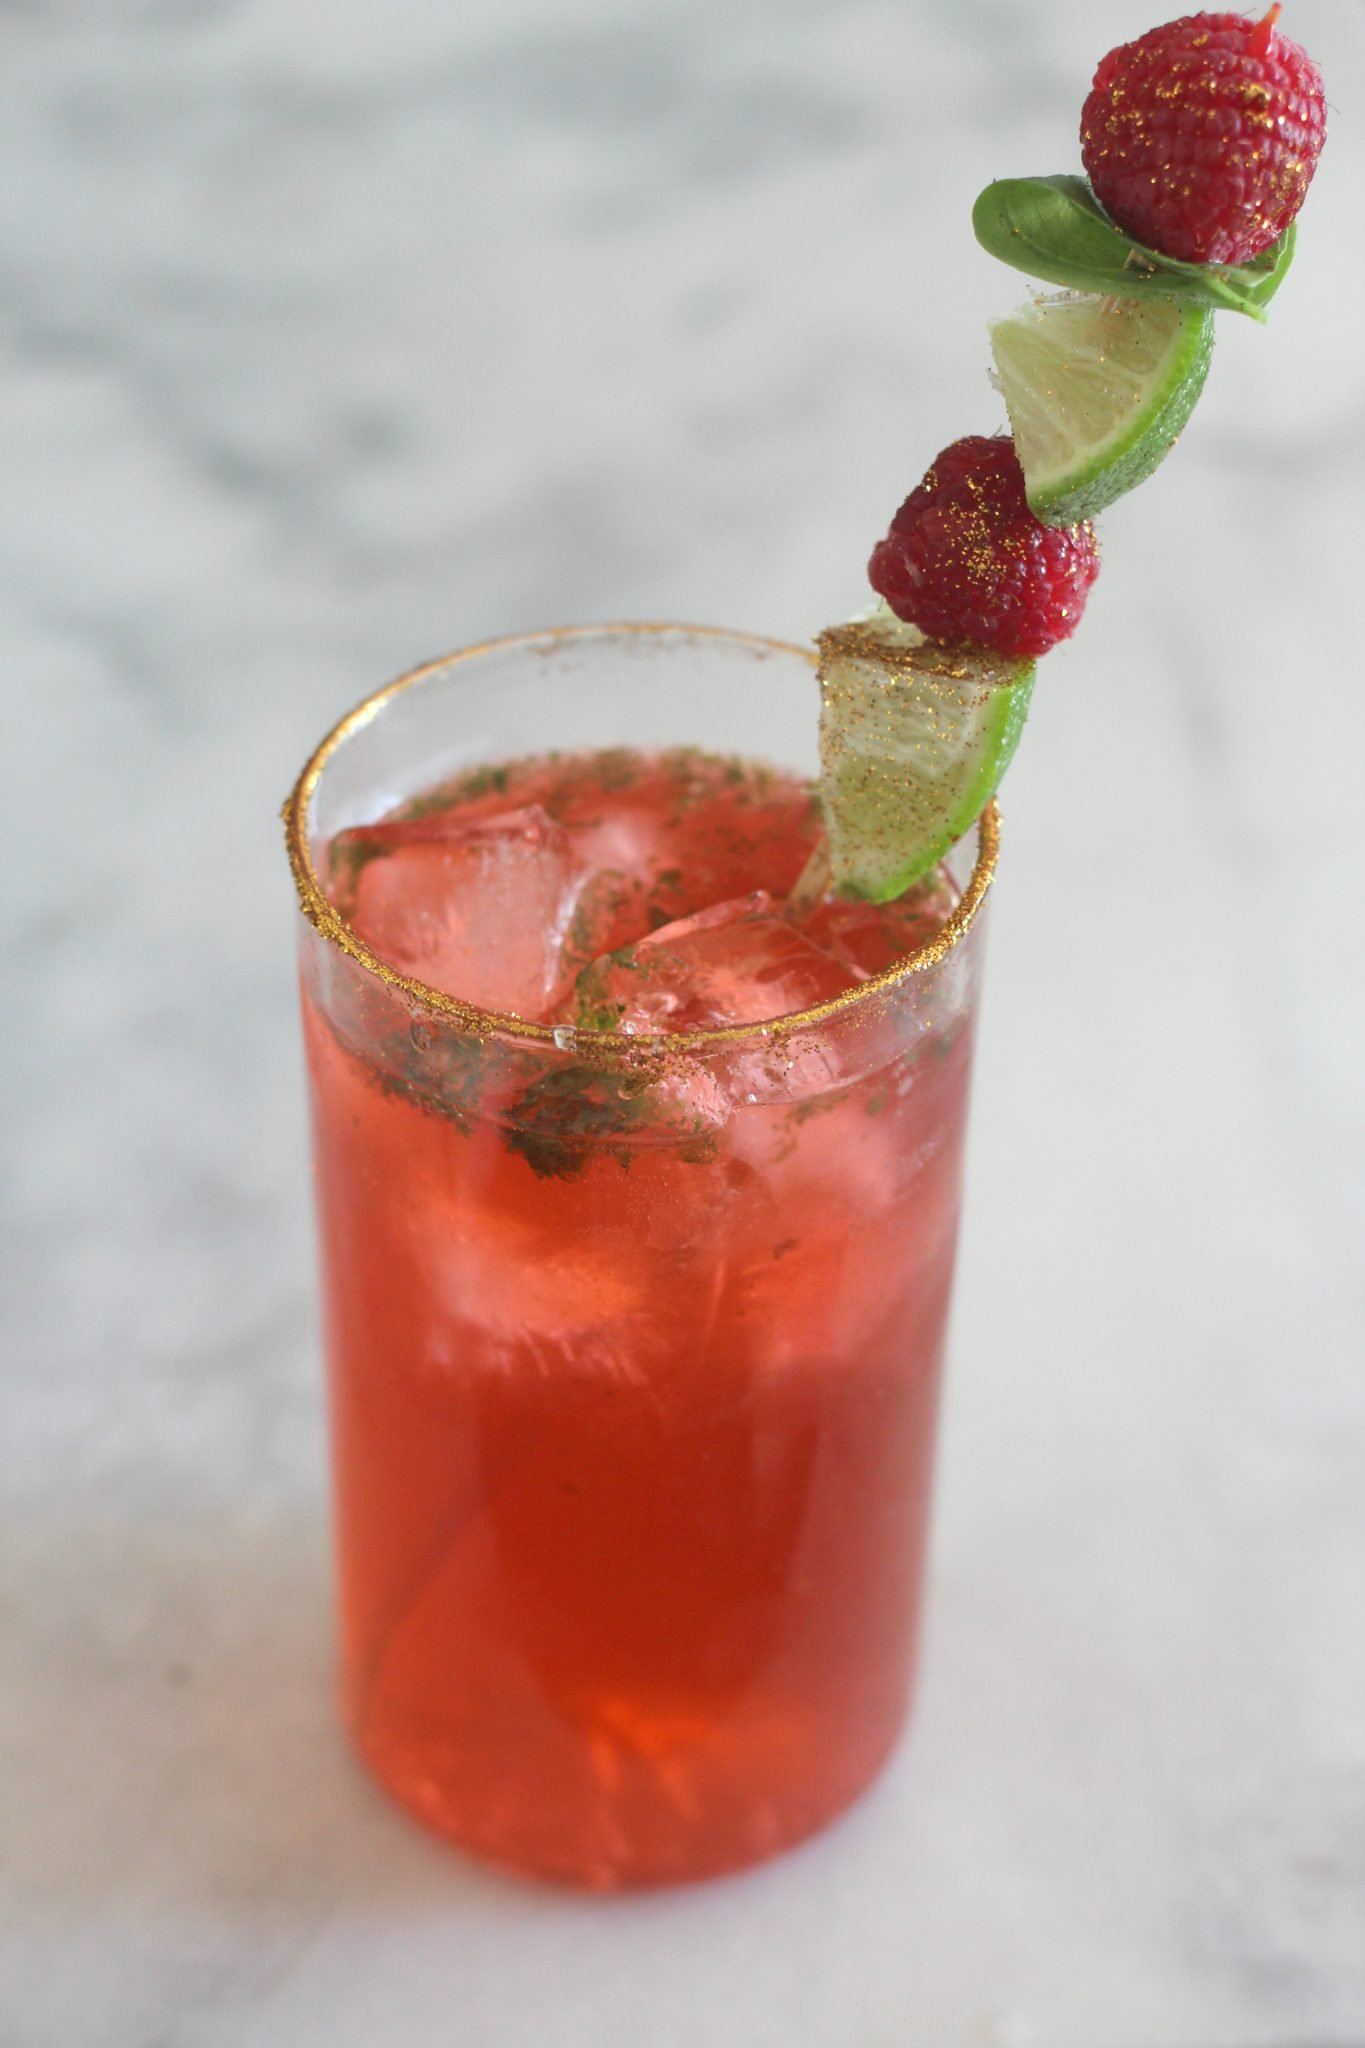 This Raspberry Basil Sparking Cocktail is just the brunch cocktail of your dreams. Made with Torani Sugar Free Syrup and fresh lime and basil, it is light and fruity and contains zero carbs! #AToraniBrunch